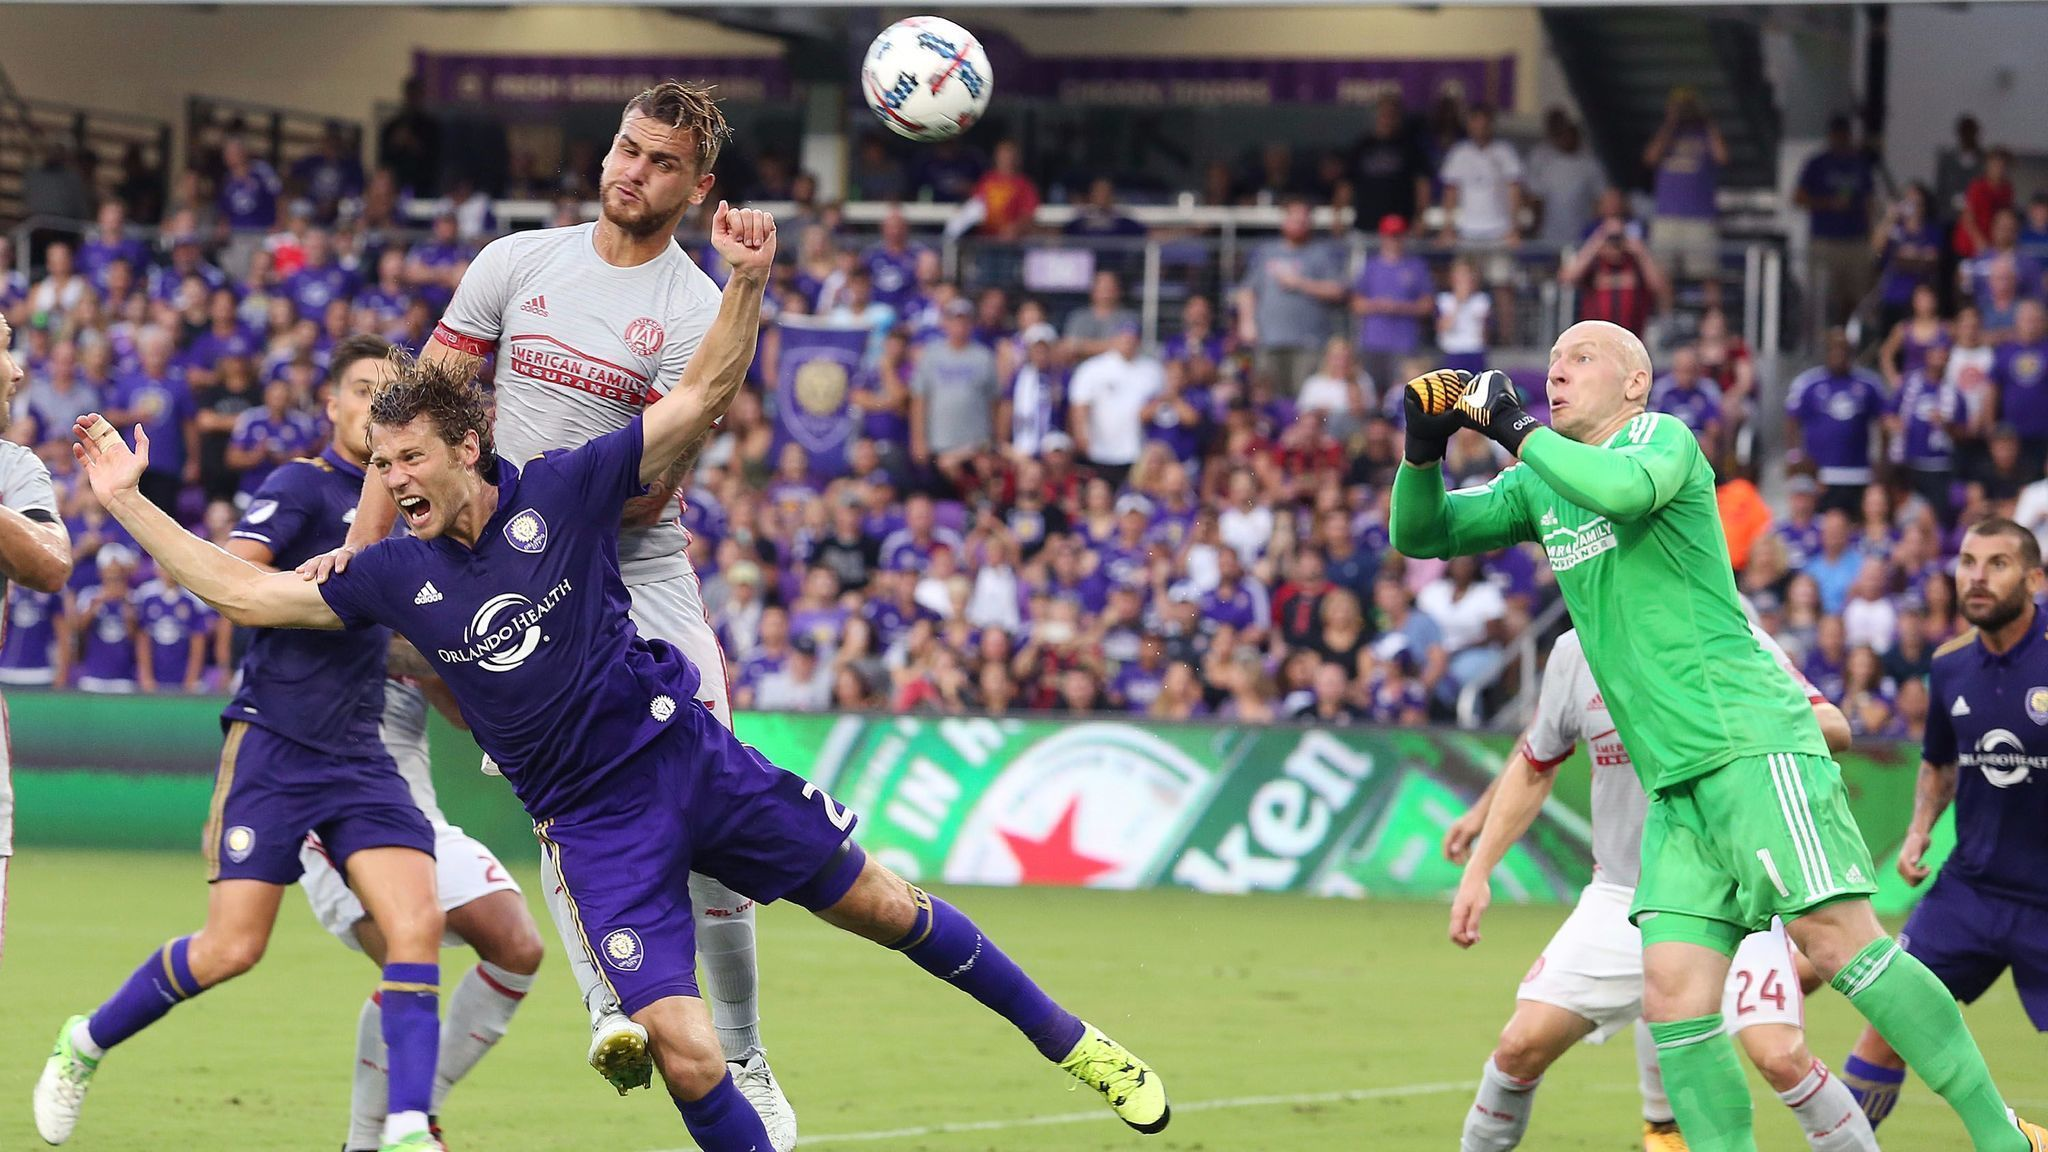 Os-sp-orlando-city-news-0722